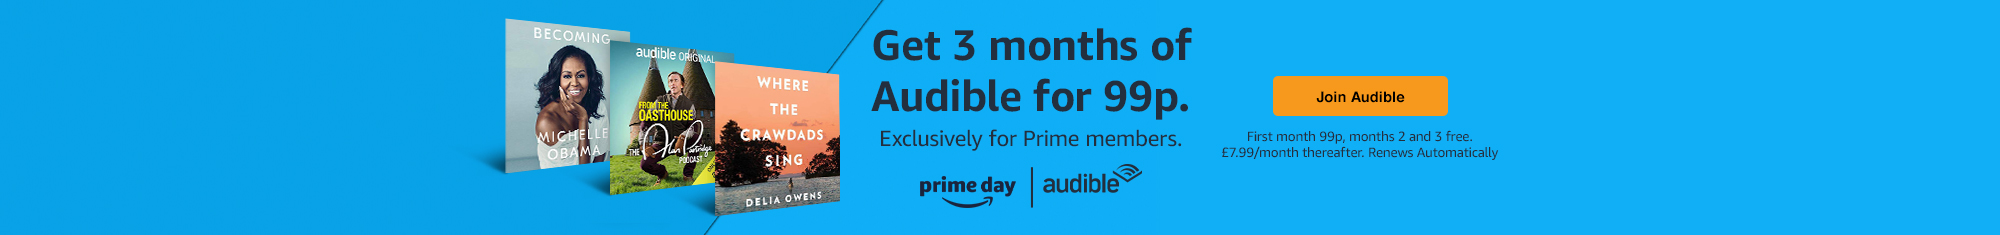 Get 3 months of Audible for 99p. Exclusively for Prime members.